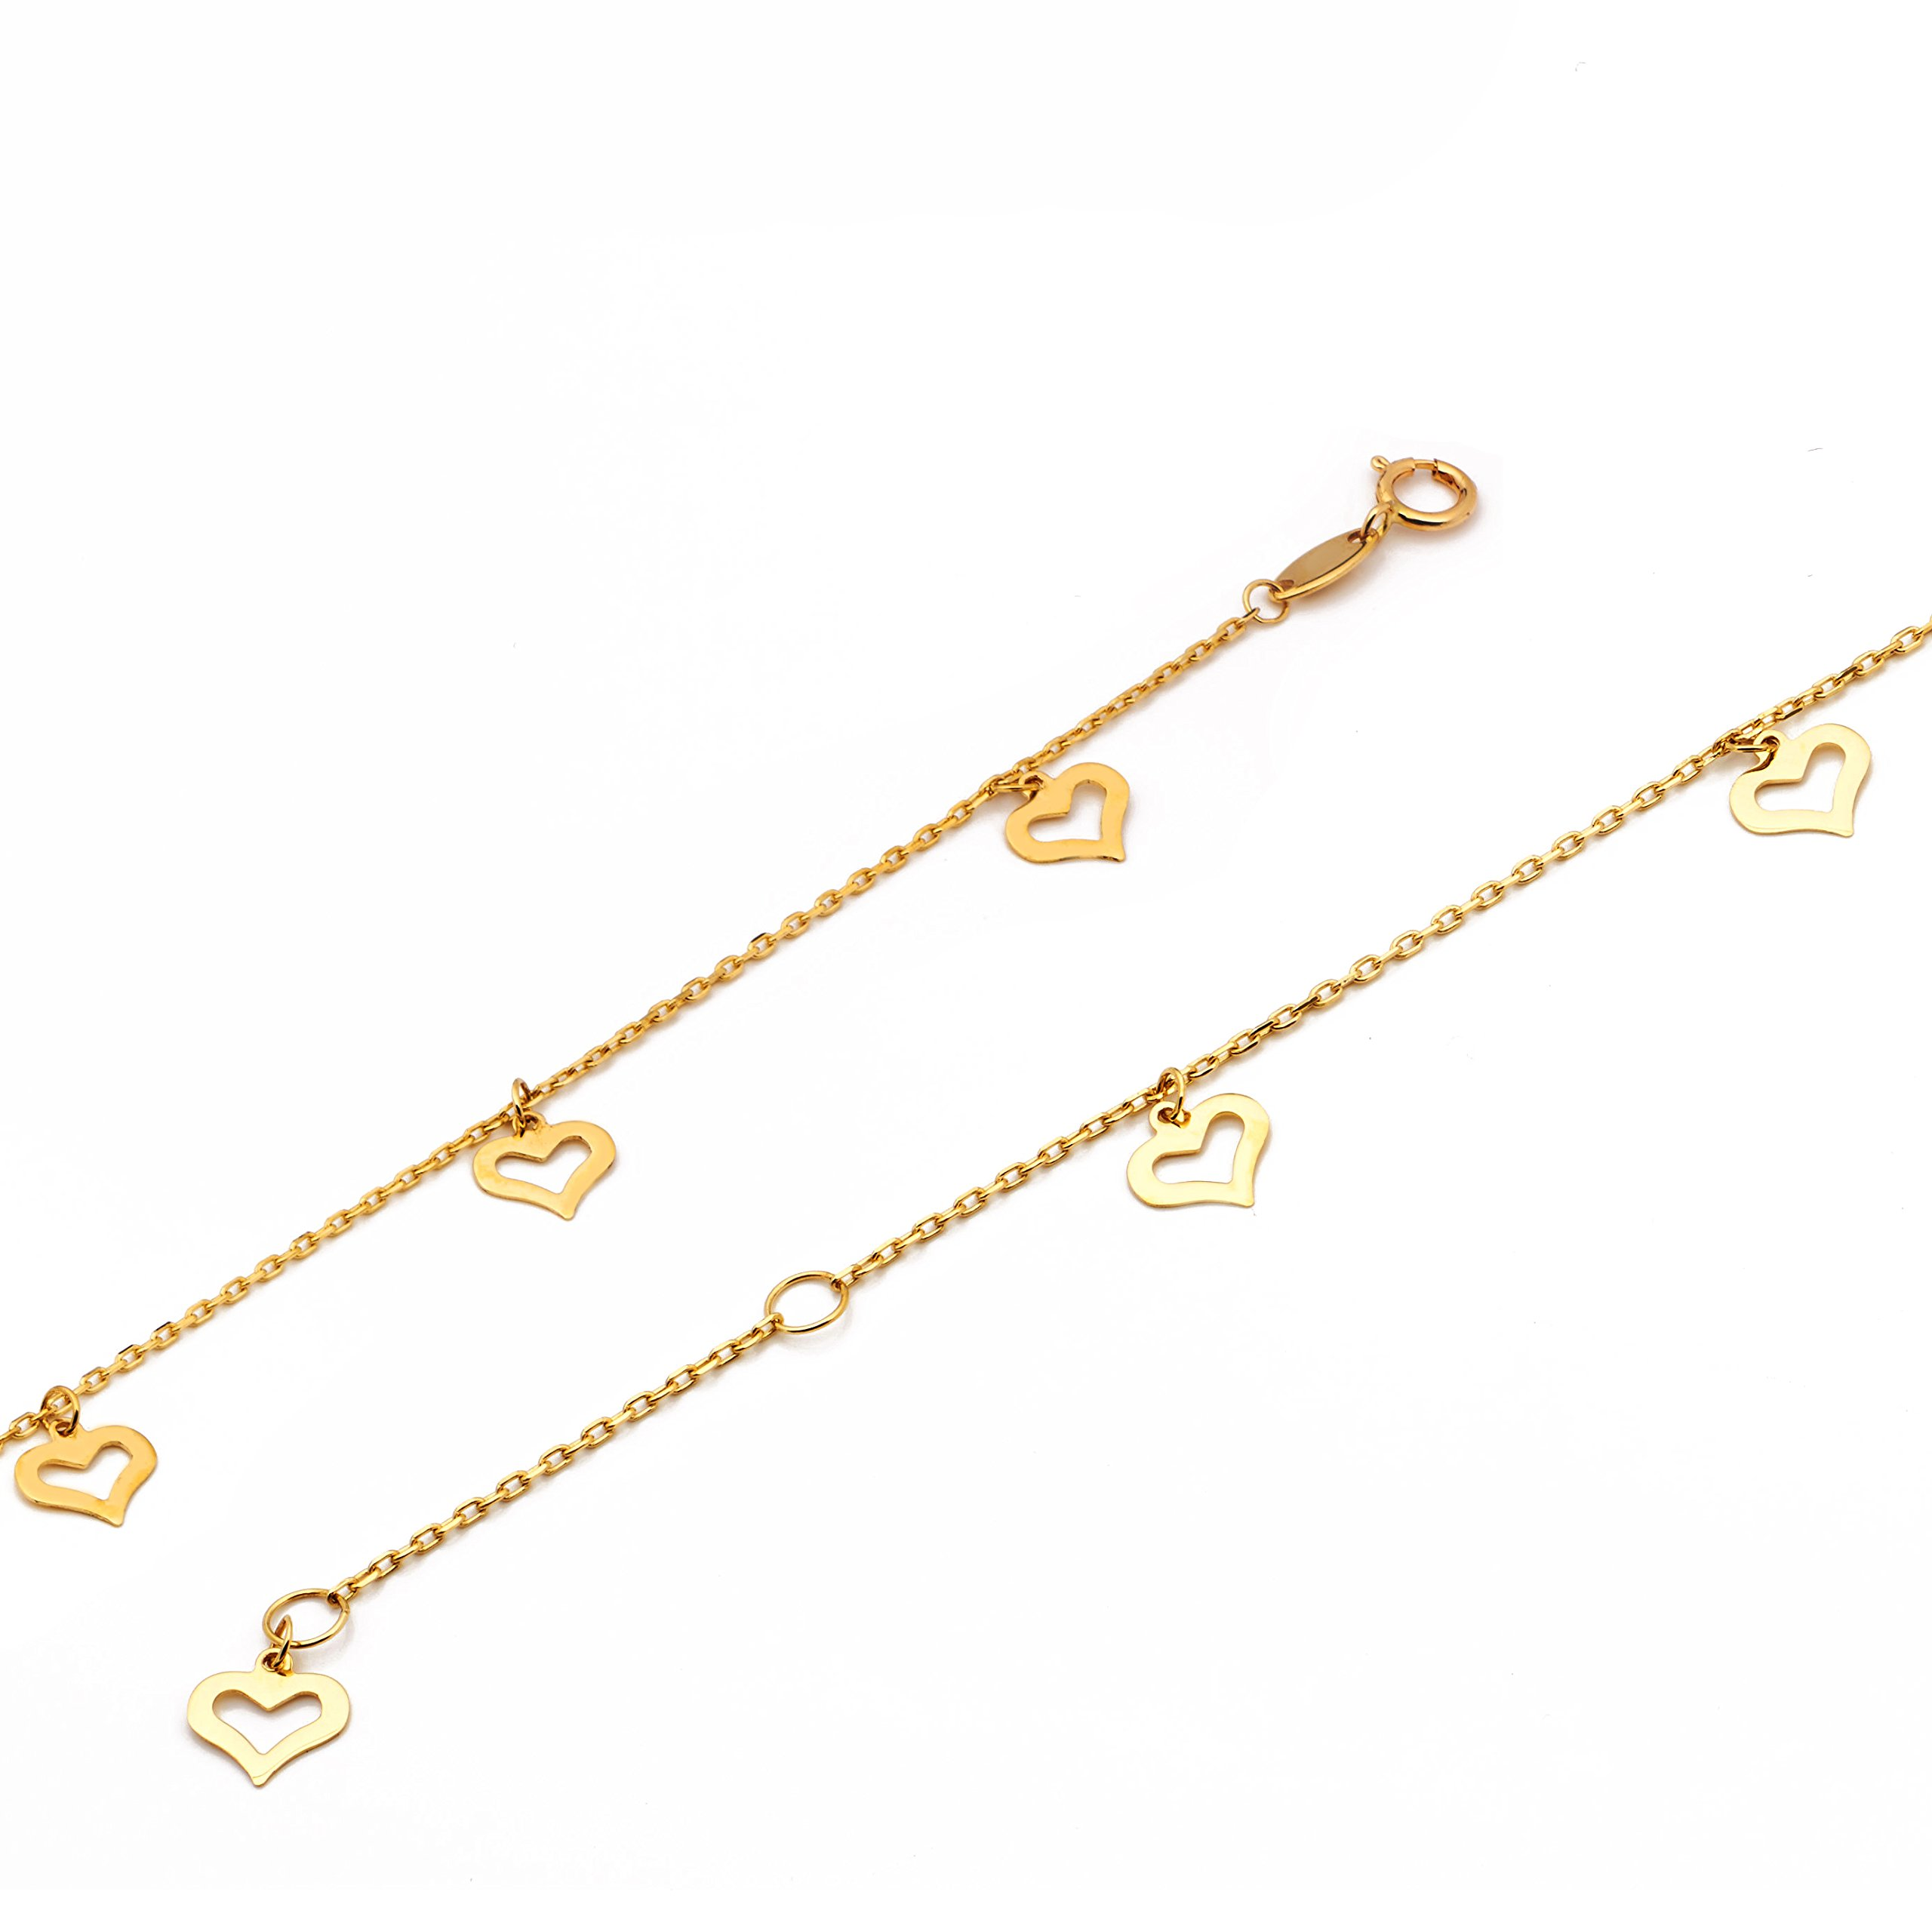 LOVEBLING 10K Yellow Gold .50mm Diamond Cut Rolo Chain with 8 Heart pendants Anklet Adjustable 9'' to 10'' (#12) by LOVEBLING (Image #3)